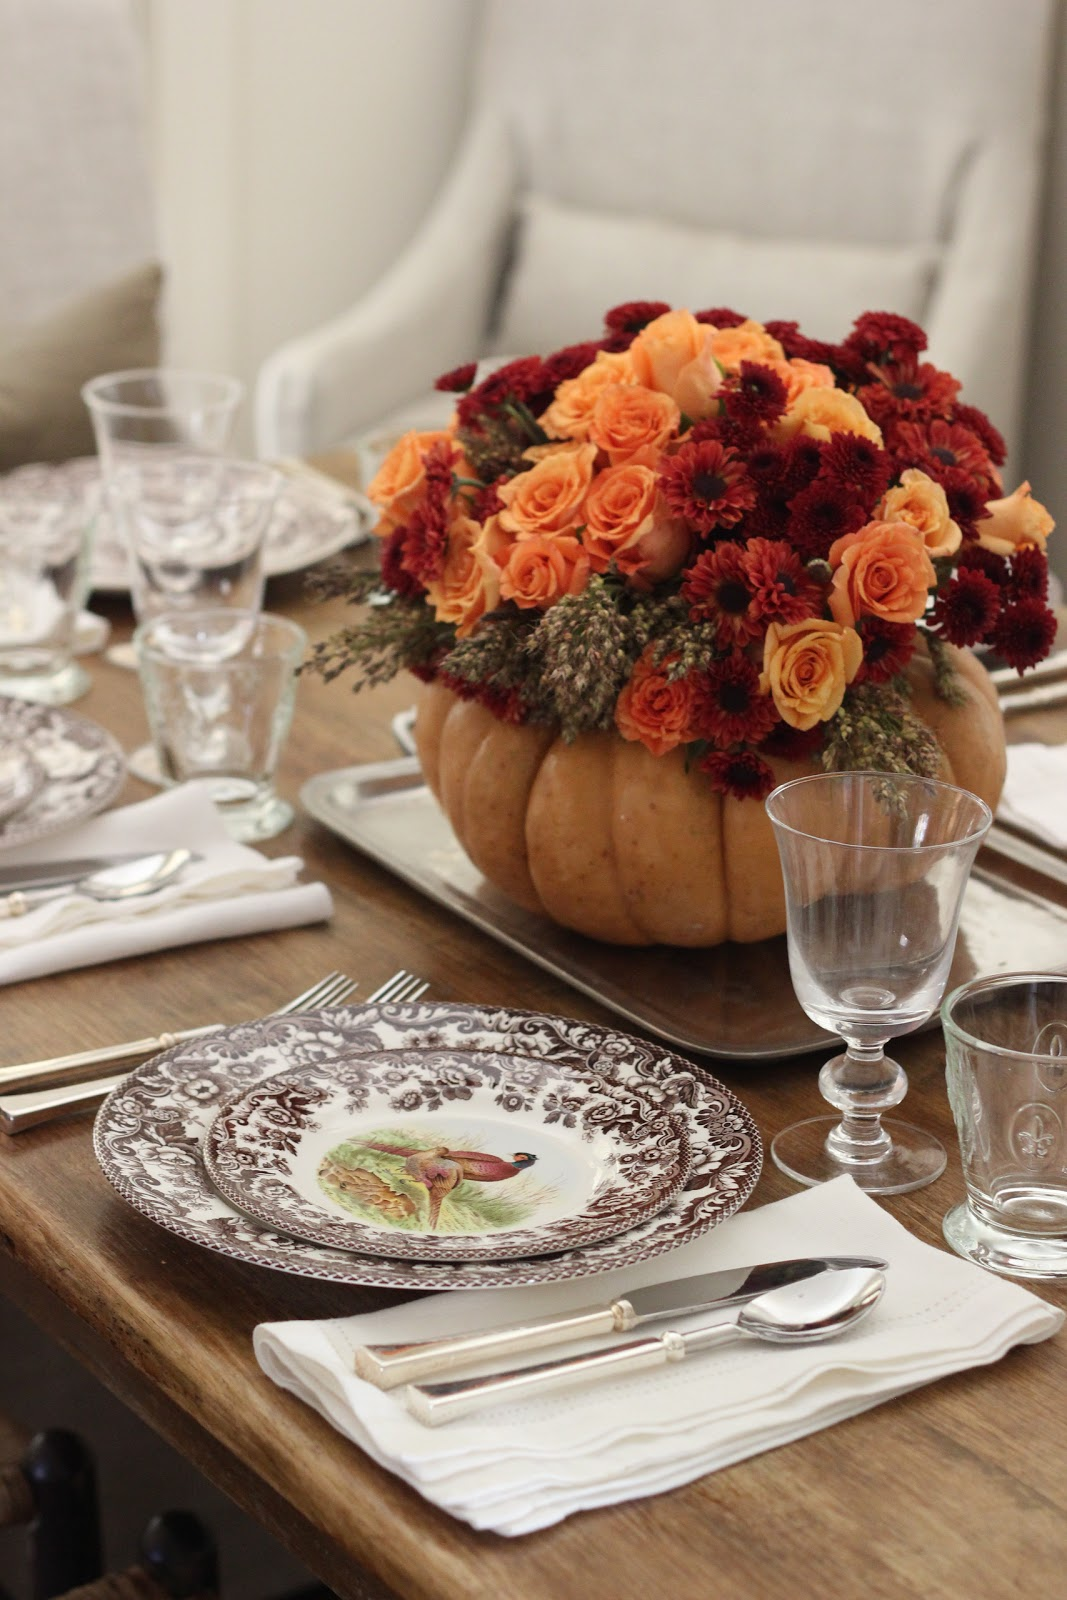 Roses, mums and broomsticks in a pumpkin vase